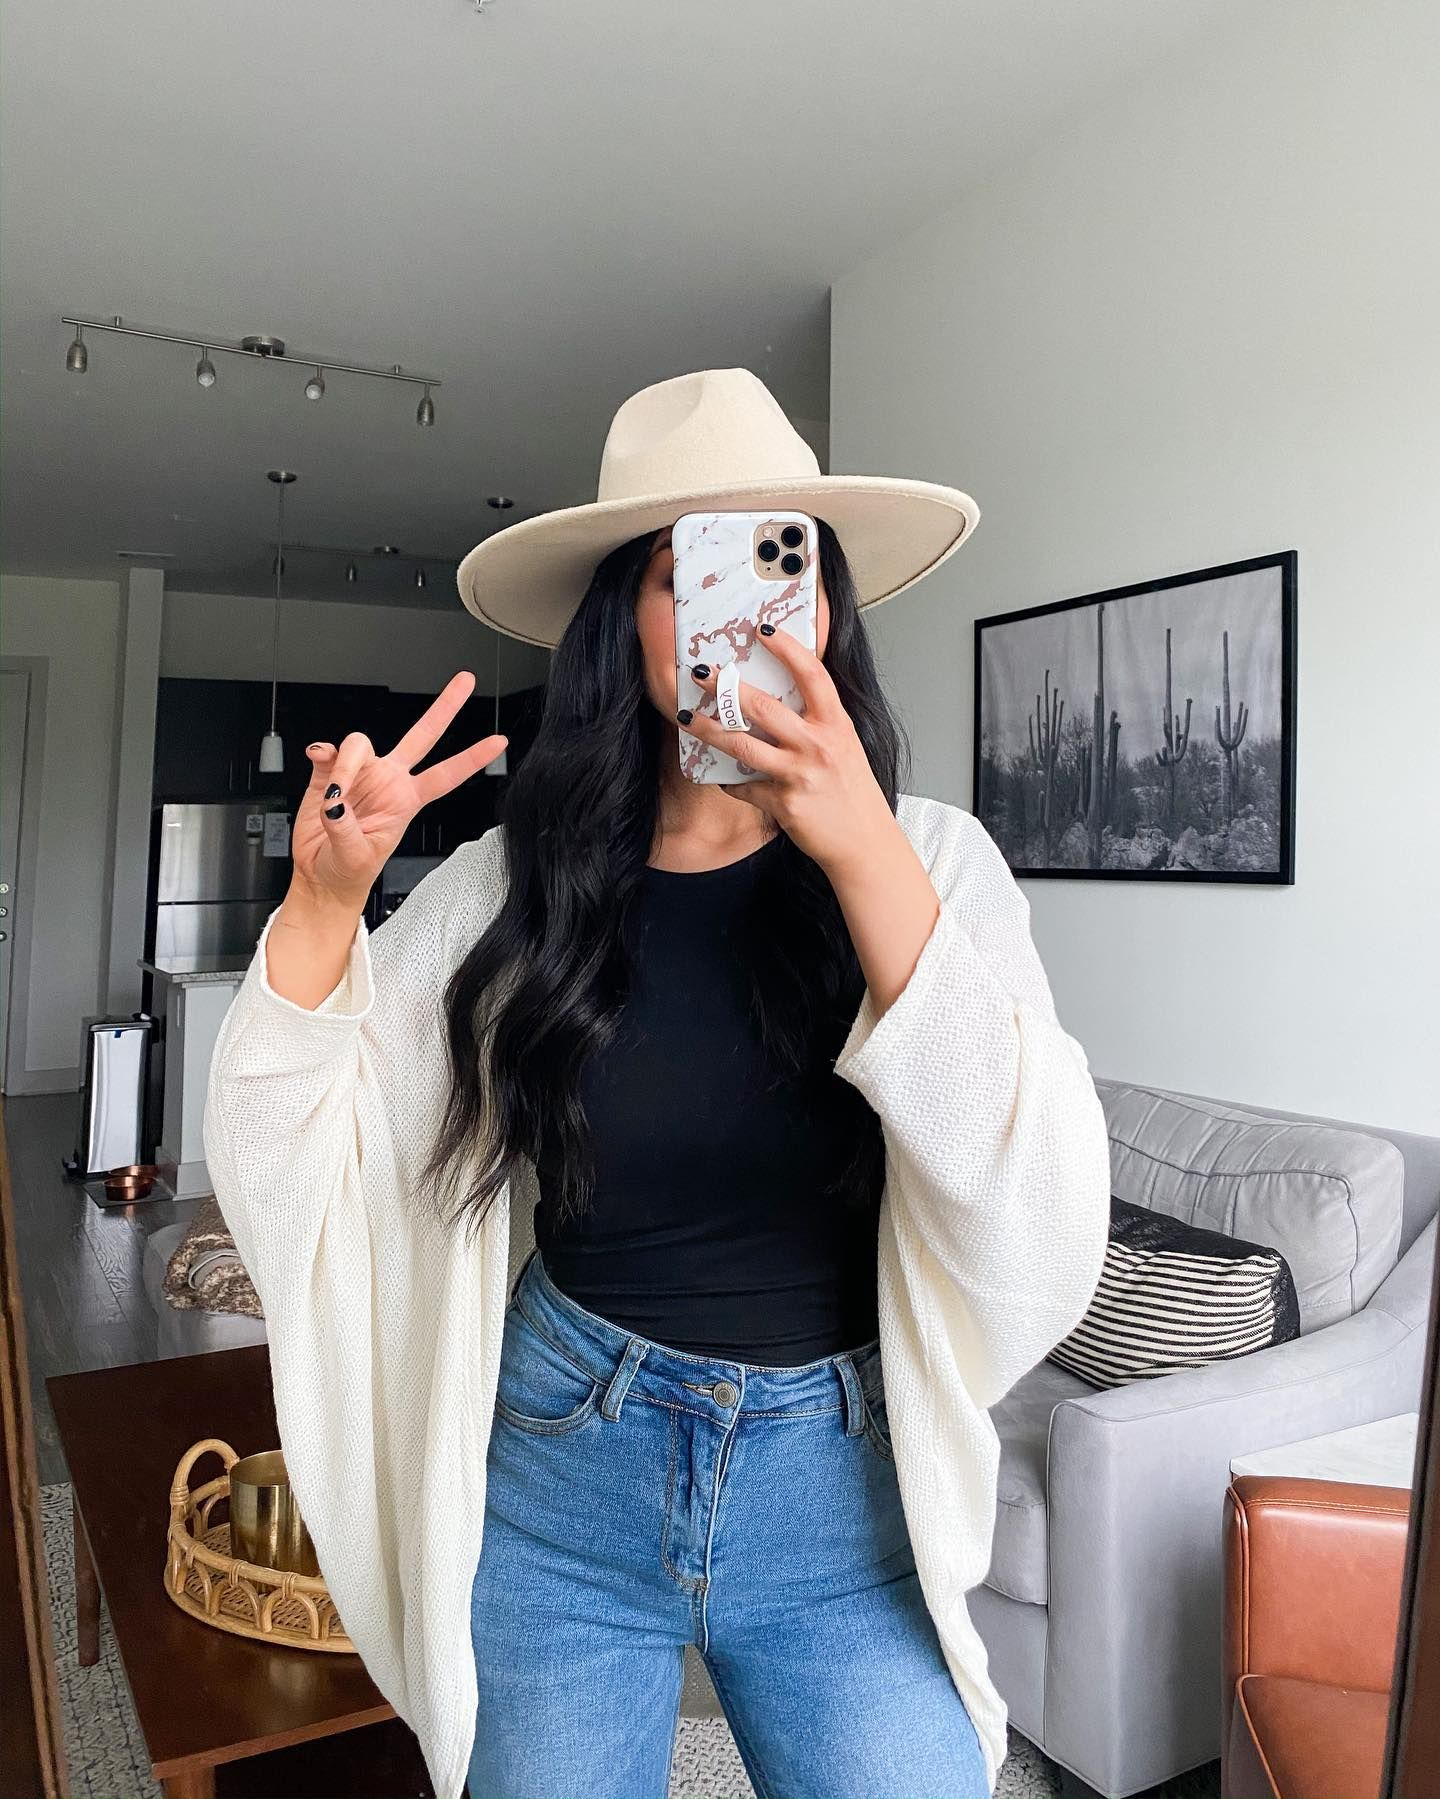 Raquelootd Is Heading Onto Stories To Show You Her Favorite Spring Styles Tap To Watch In 2020 Pretty Maxi Dress Cute Casual Outfits Fashion